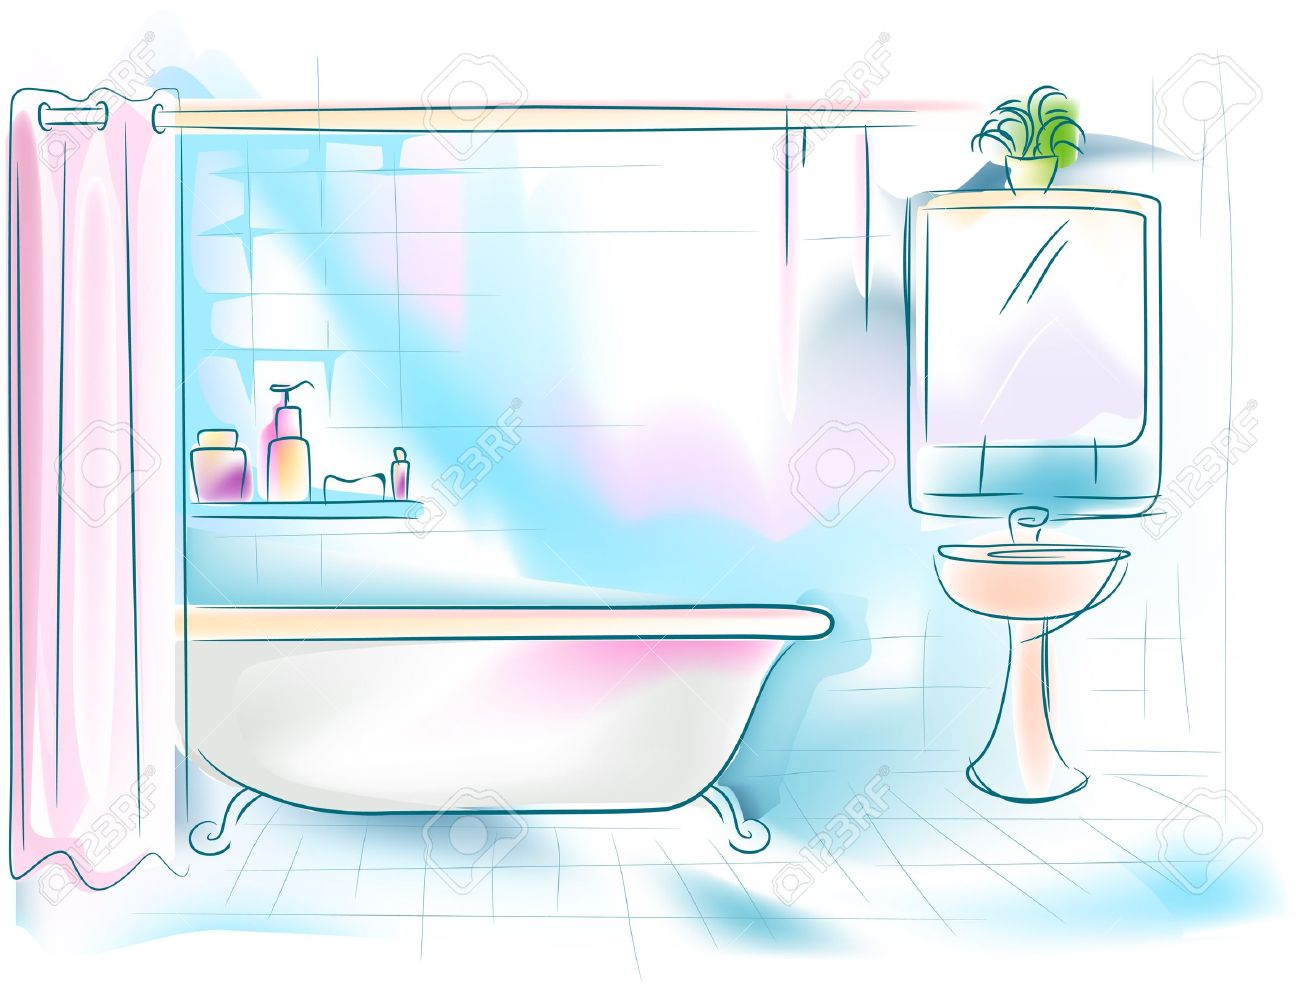 bathroom clipart free | clipart panda - free clipart images